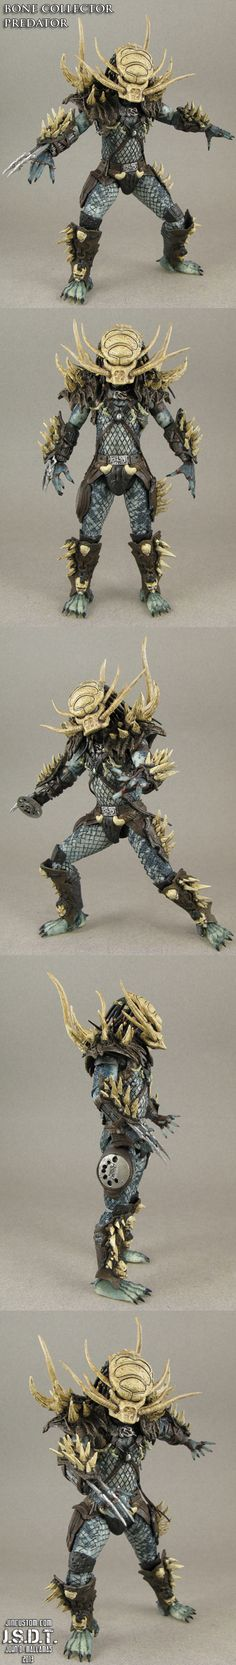 Custom Bone Collector NECA Predator figure by Jin-Saotome on DeviantArt